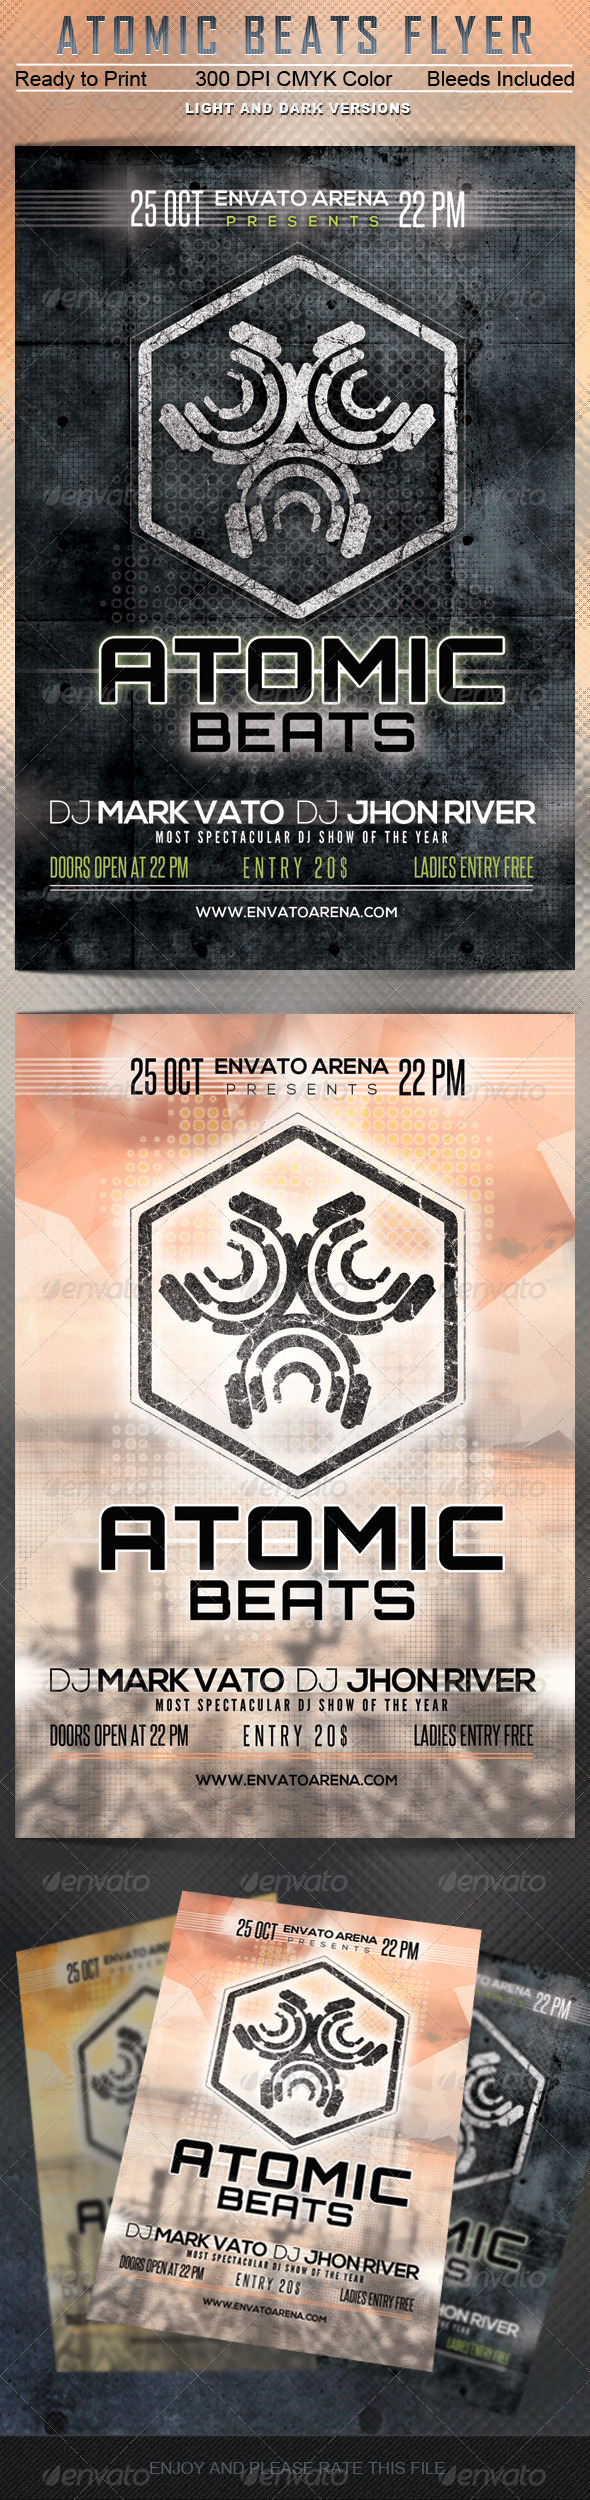 GraphicRiver Atomic Beats Flyer Template 5522318